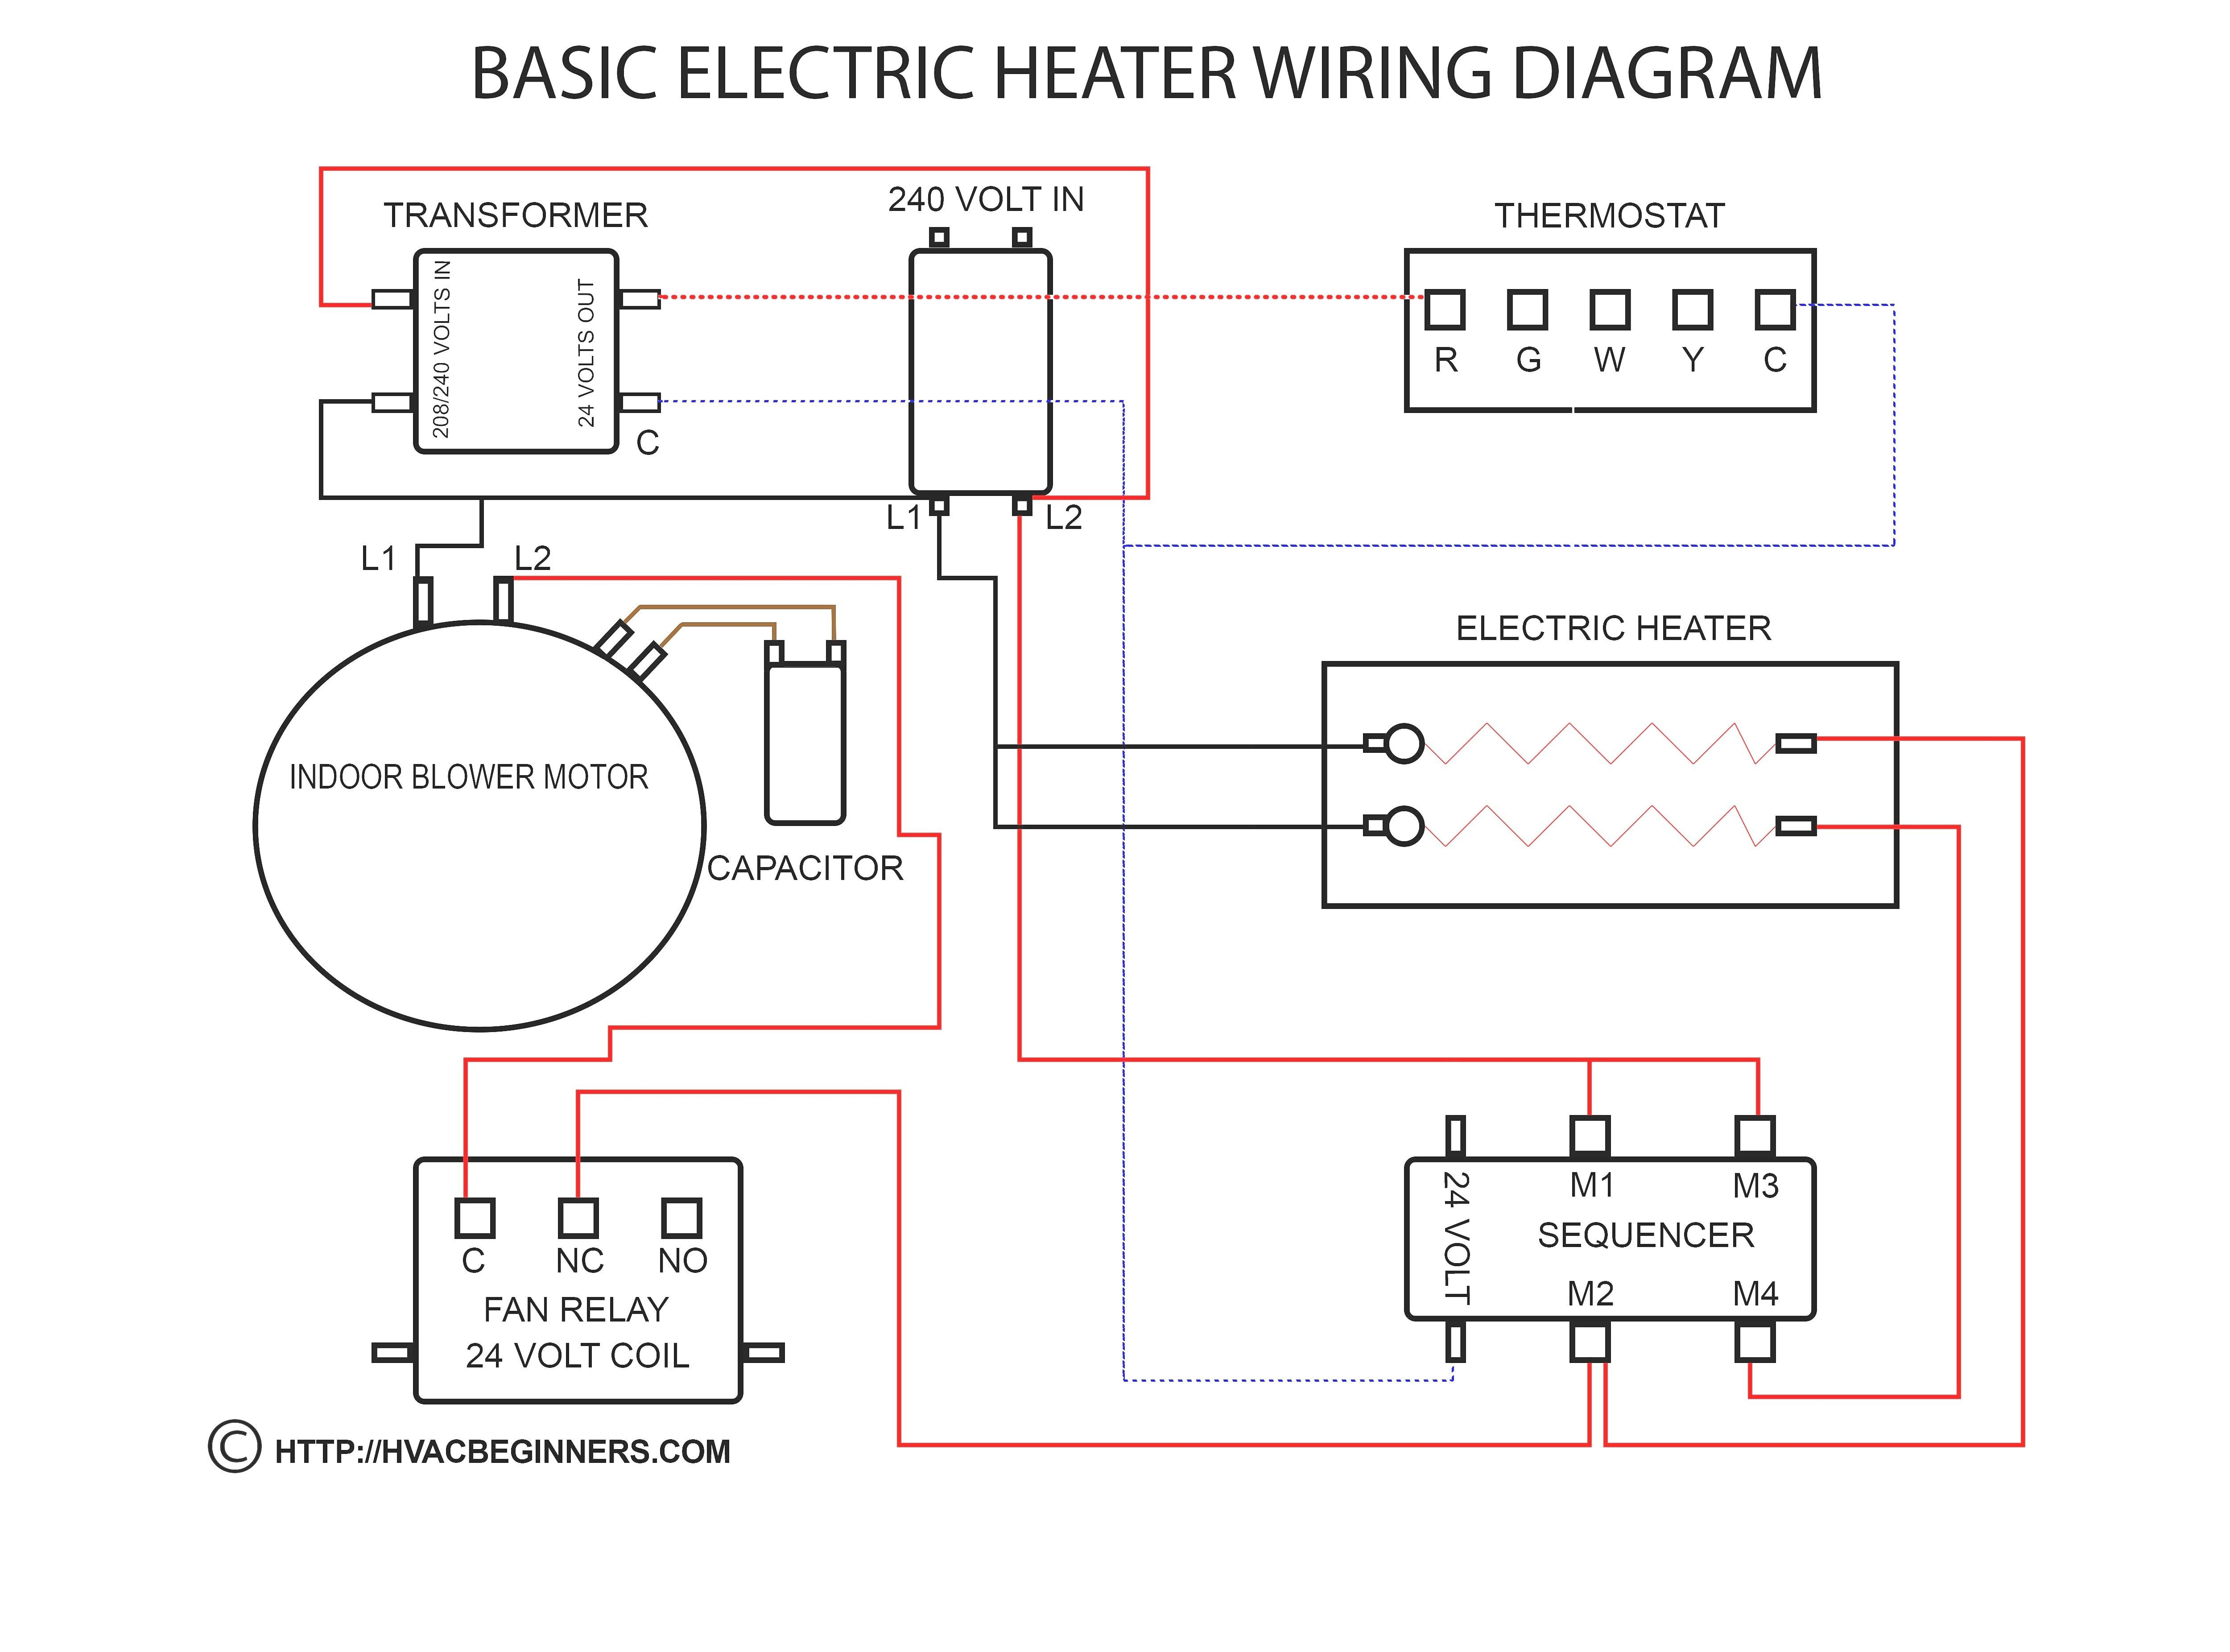 House Thermostat Wiring Diagram from i.pinimg.com